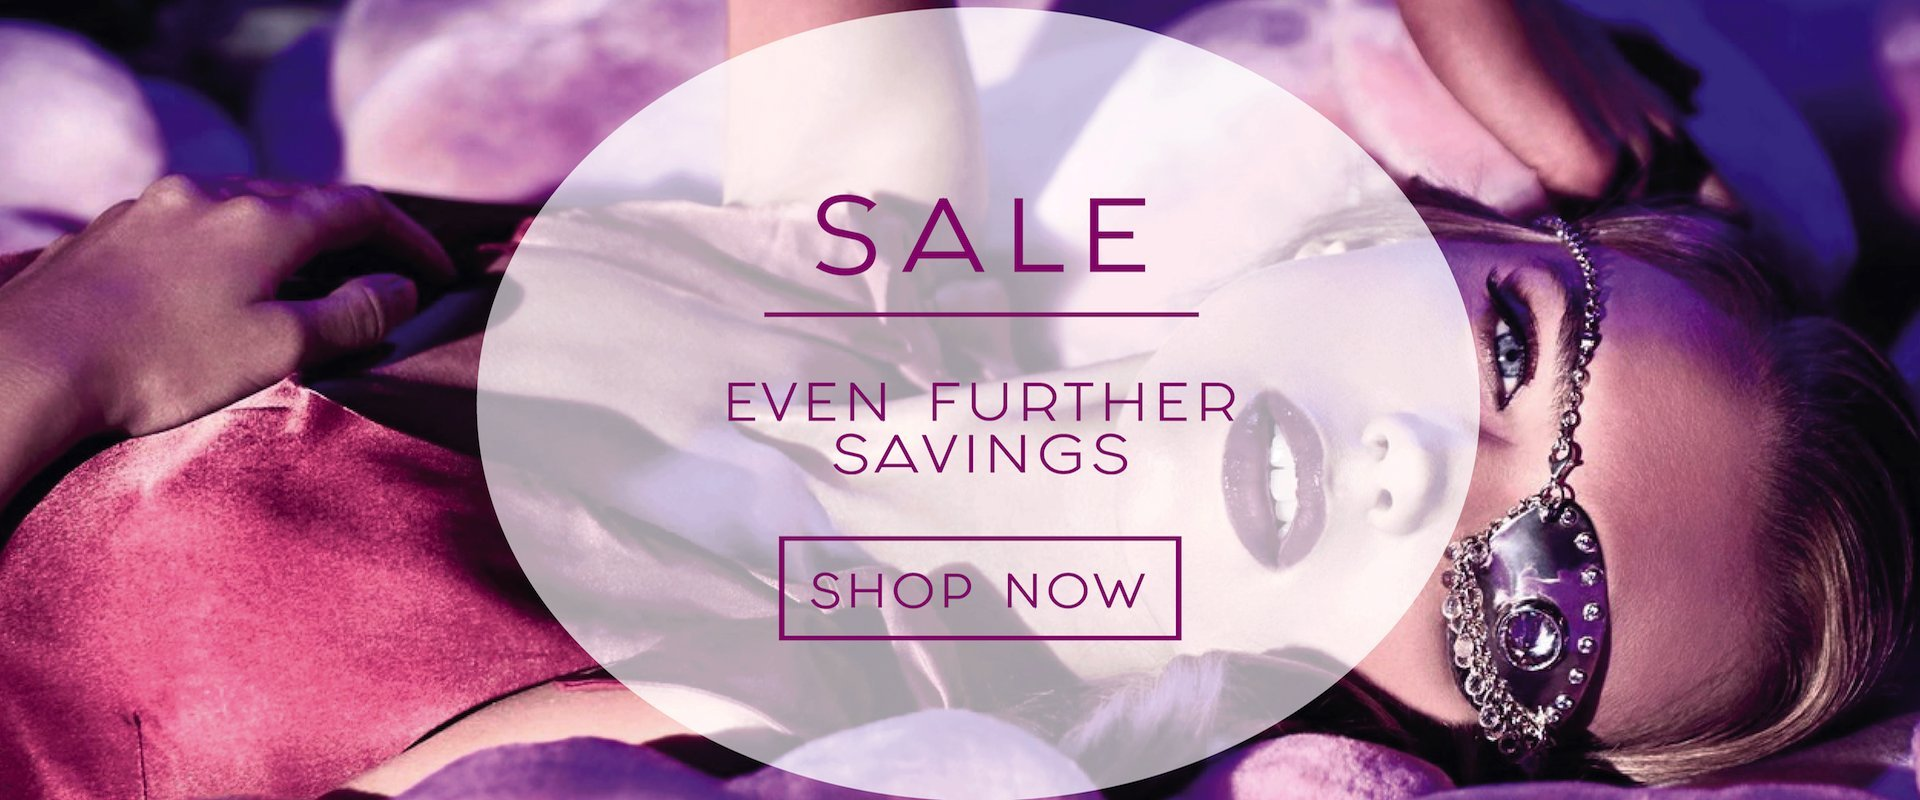 Perfume Clearance Centre Perfume Sale and Specials